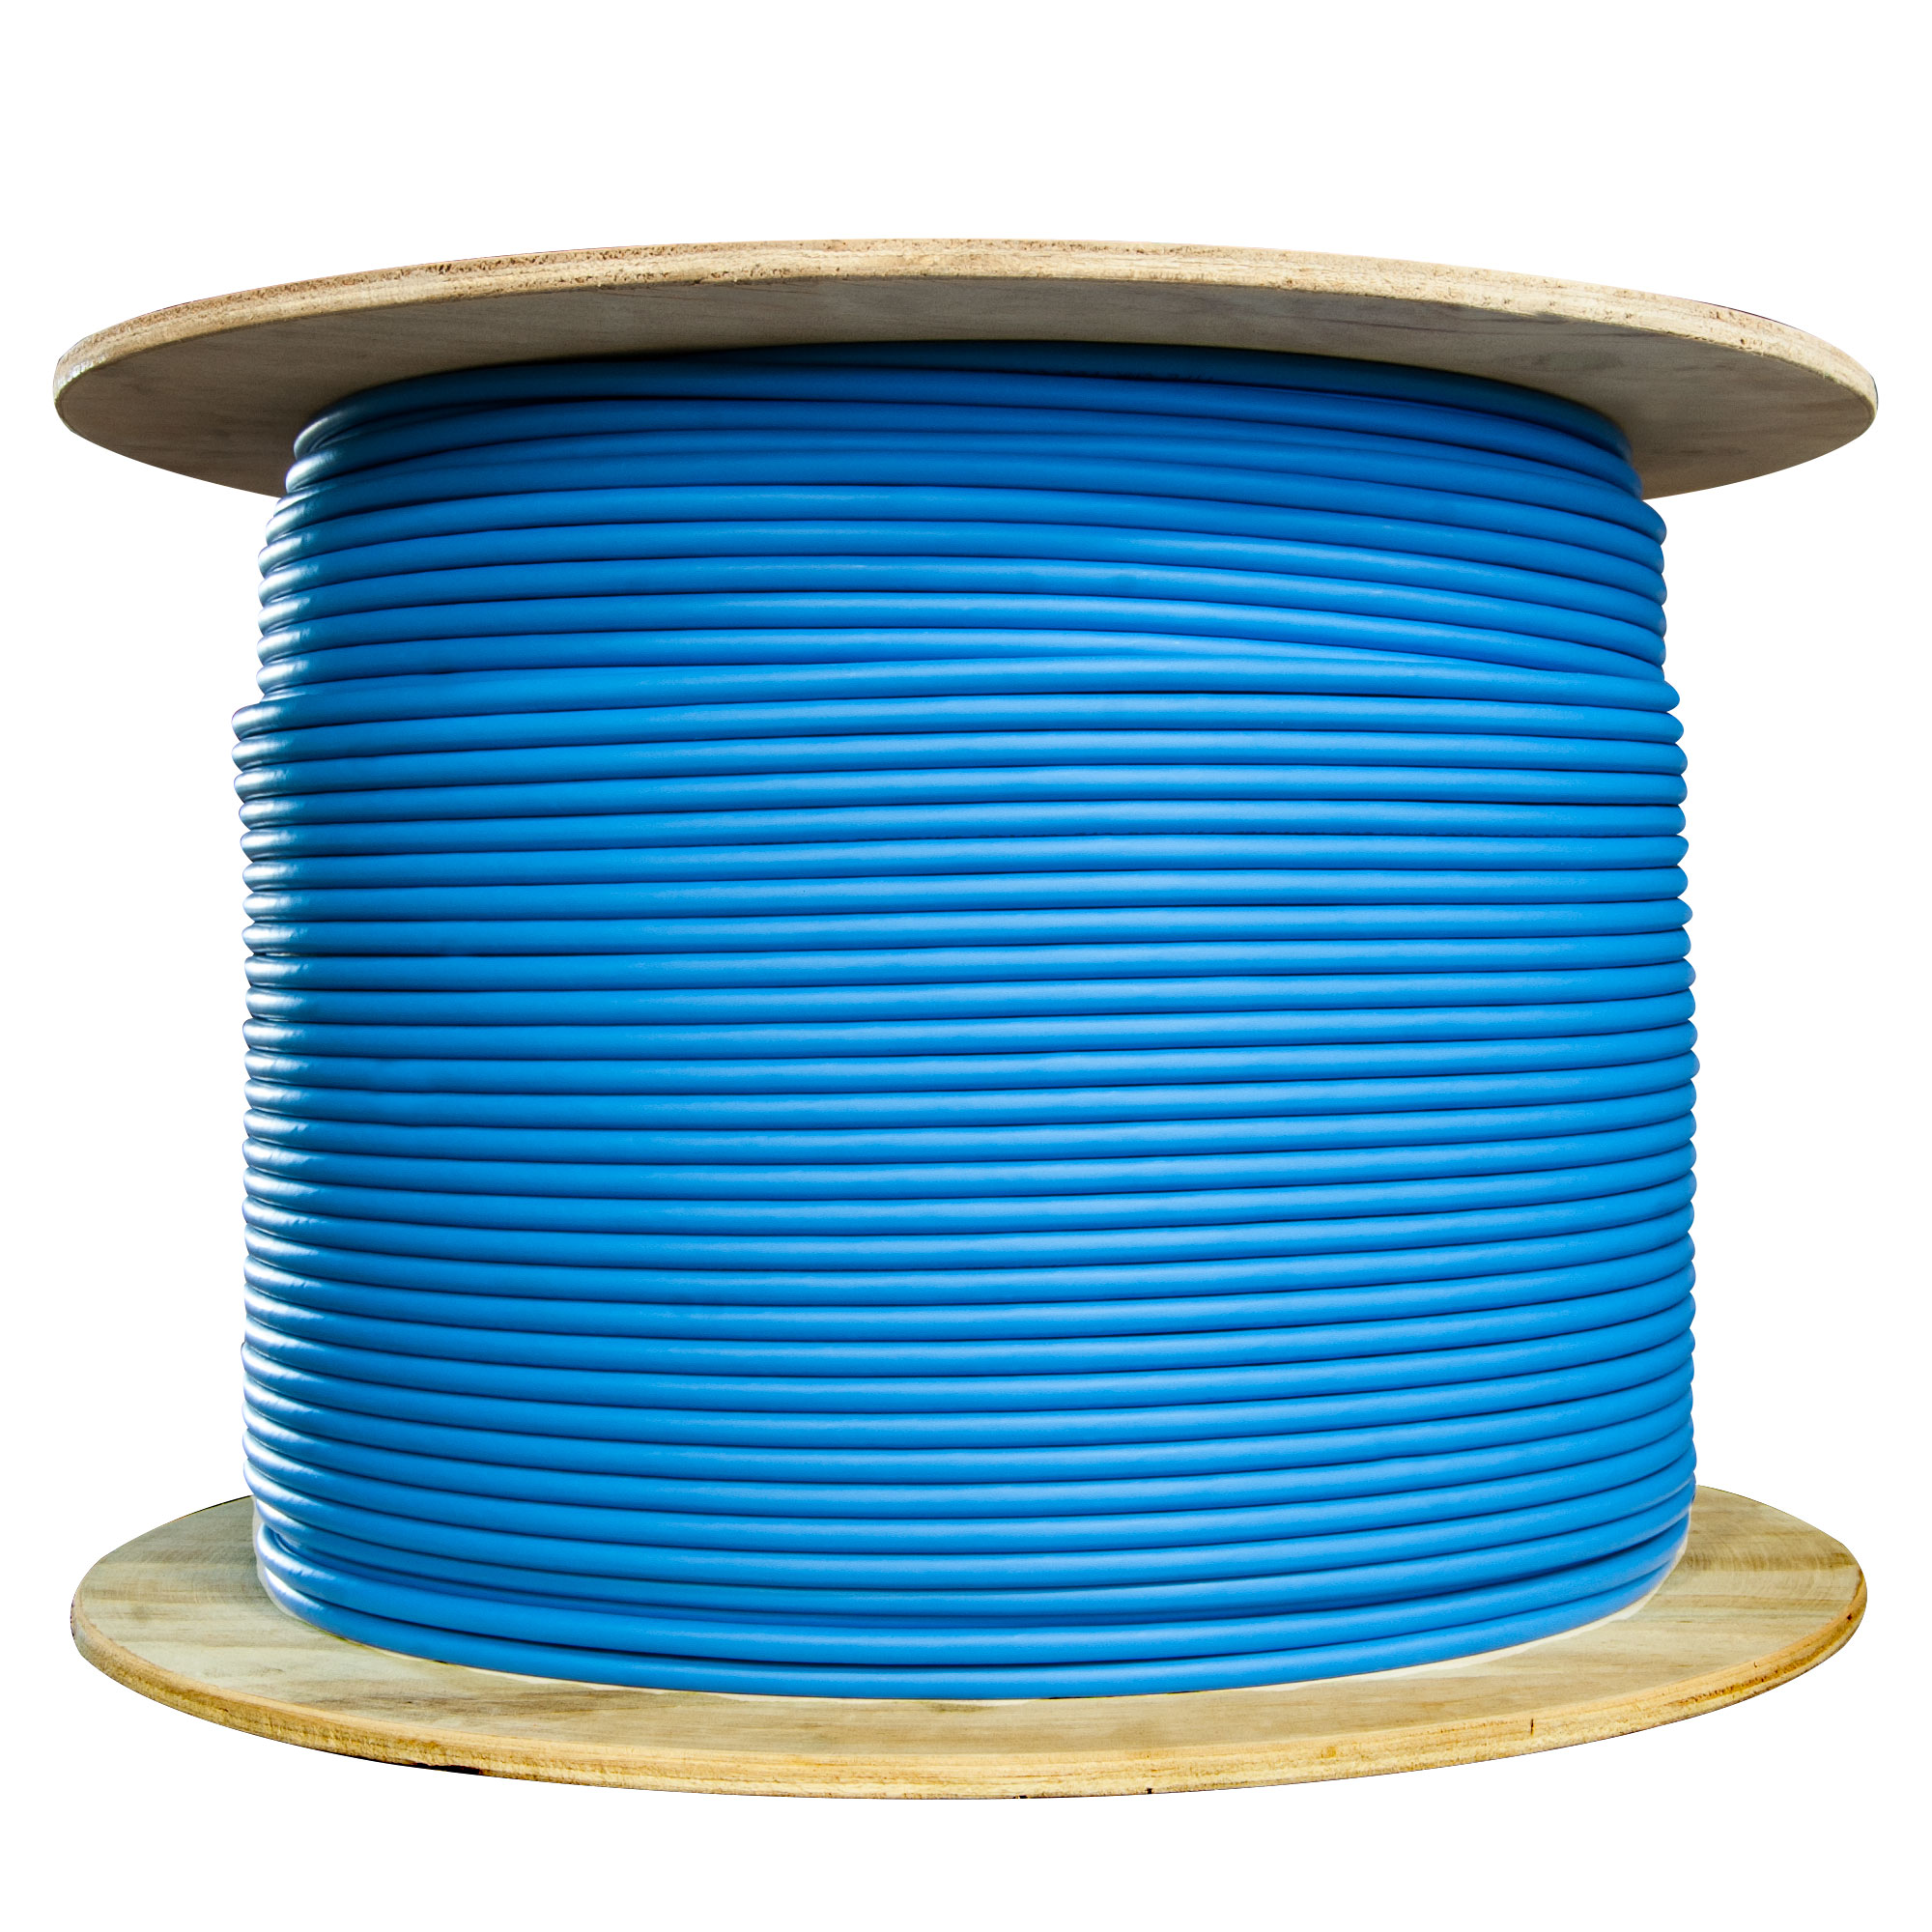 hight resolution of  bulk shielded cat6 blue ethernet cable solid spool 1000 foot part number